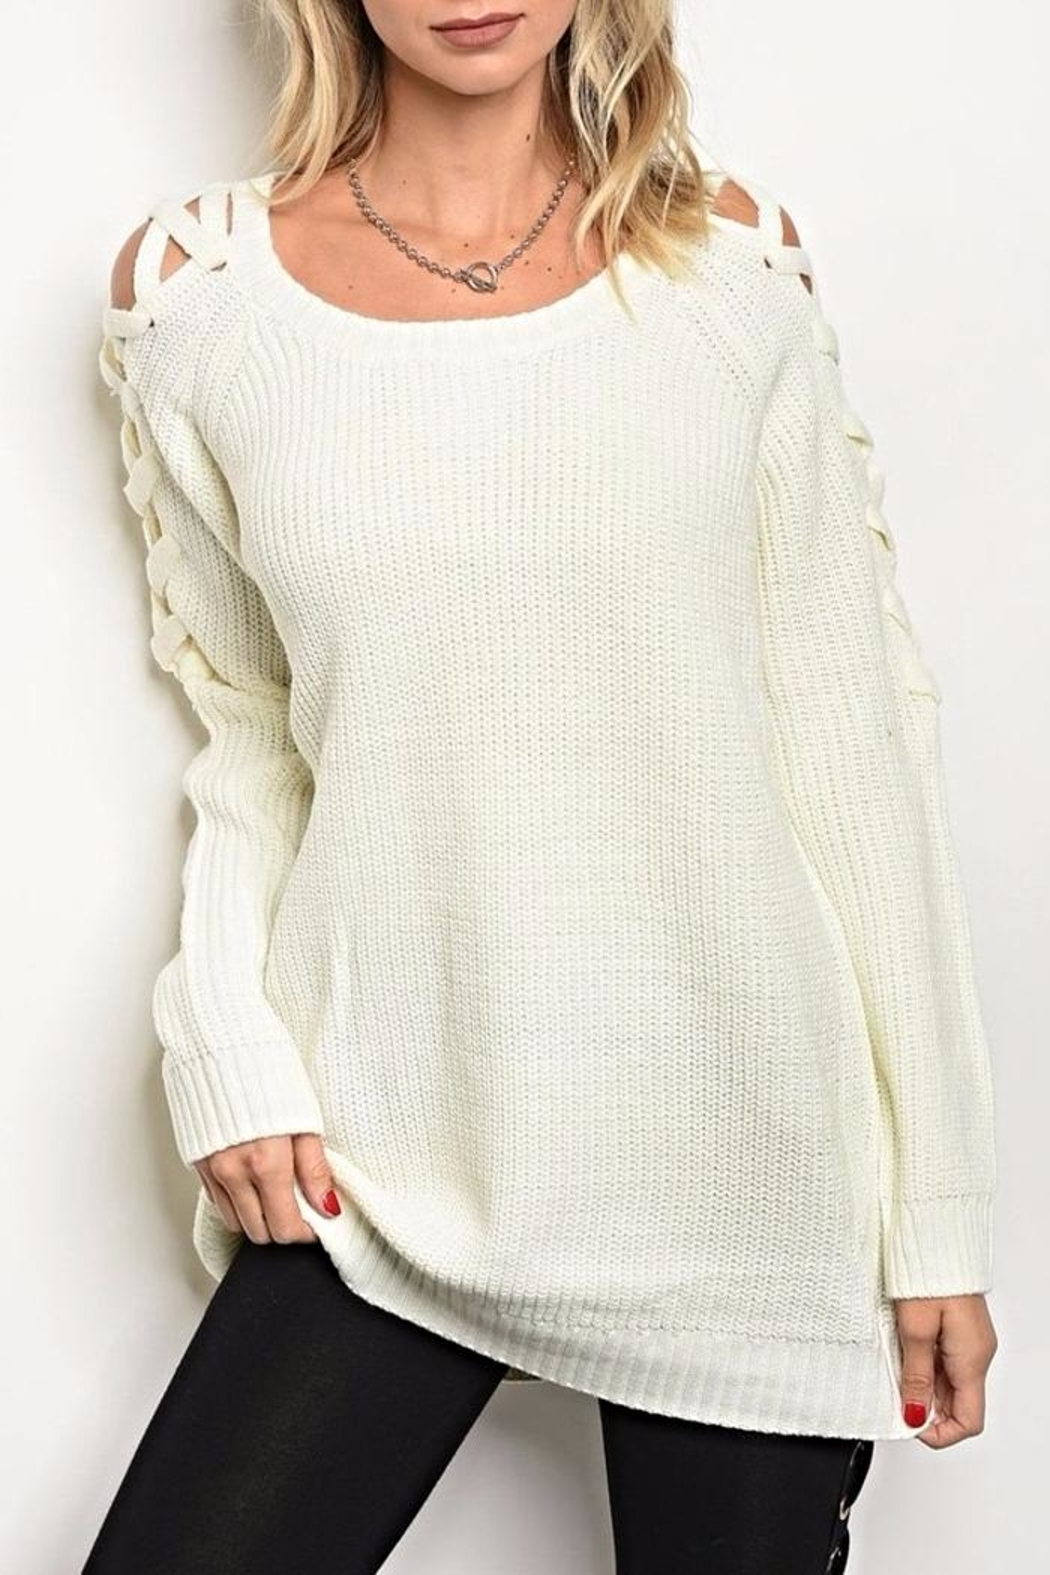 LoveRiche Lace Up Sweater - Main Image